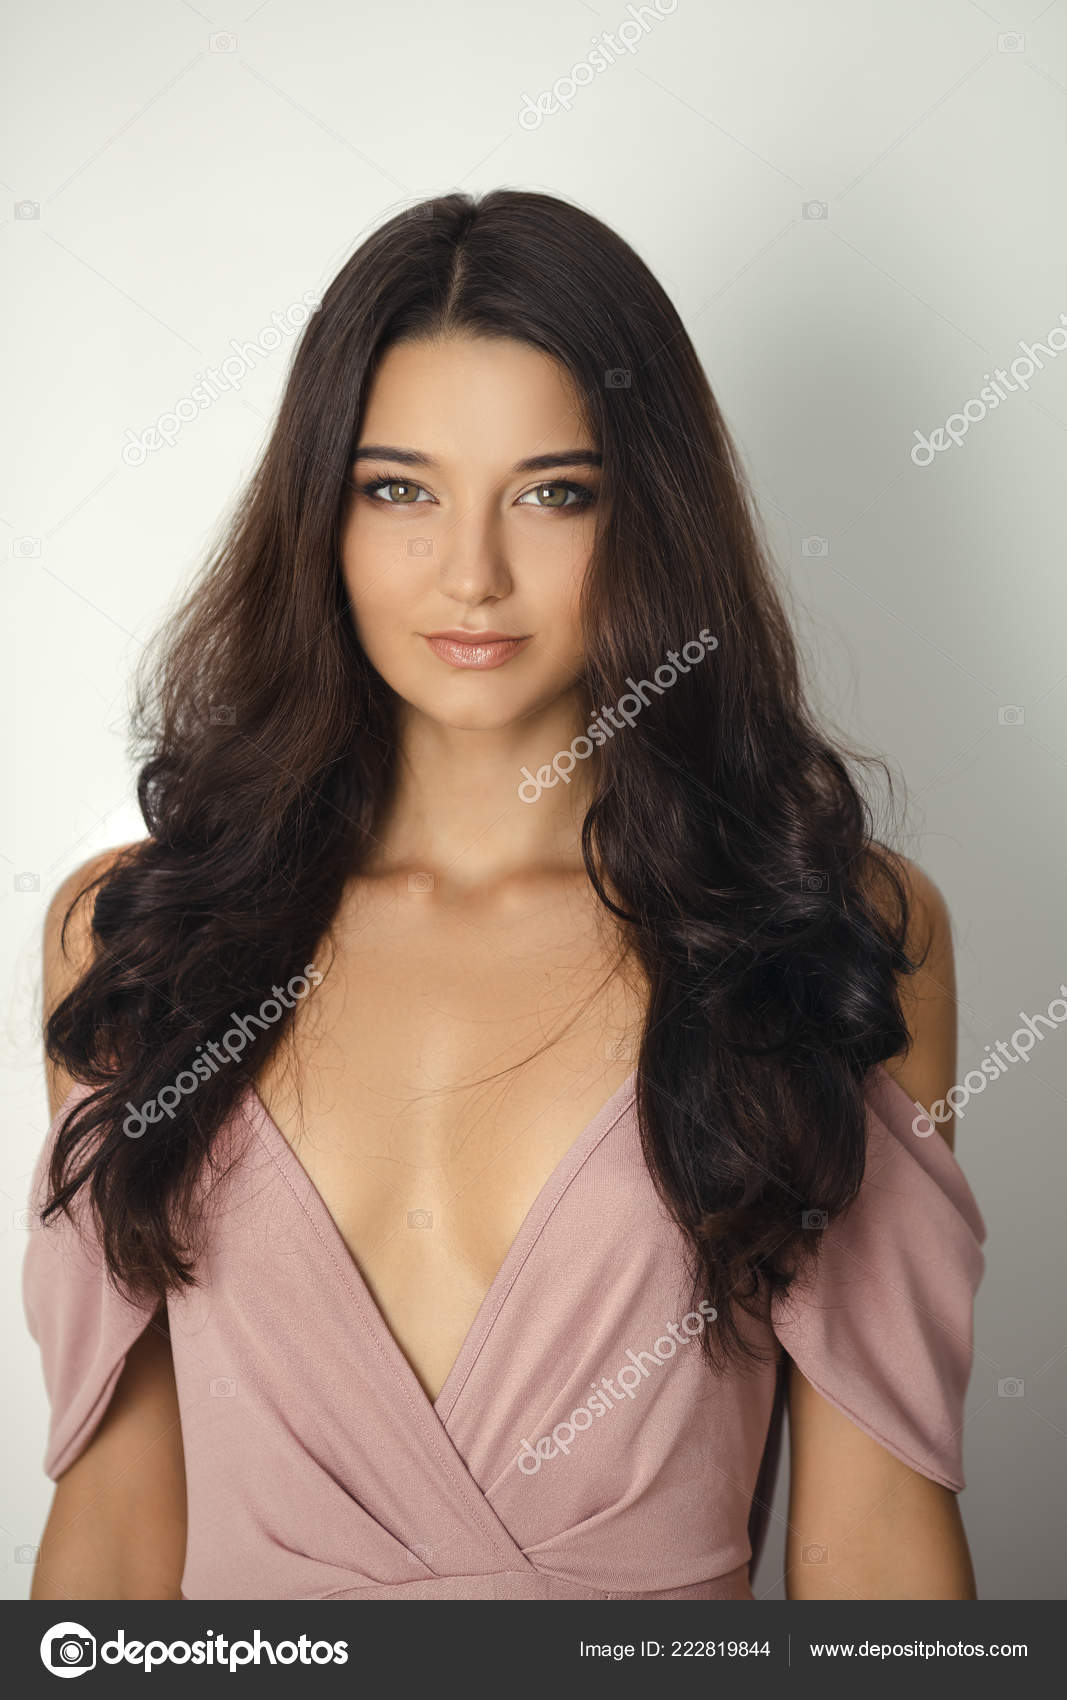 a06275aa5d0 Bridesmaid portrait in studio. Attractive young woman with perfect make-up  and hair style– stock image